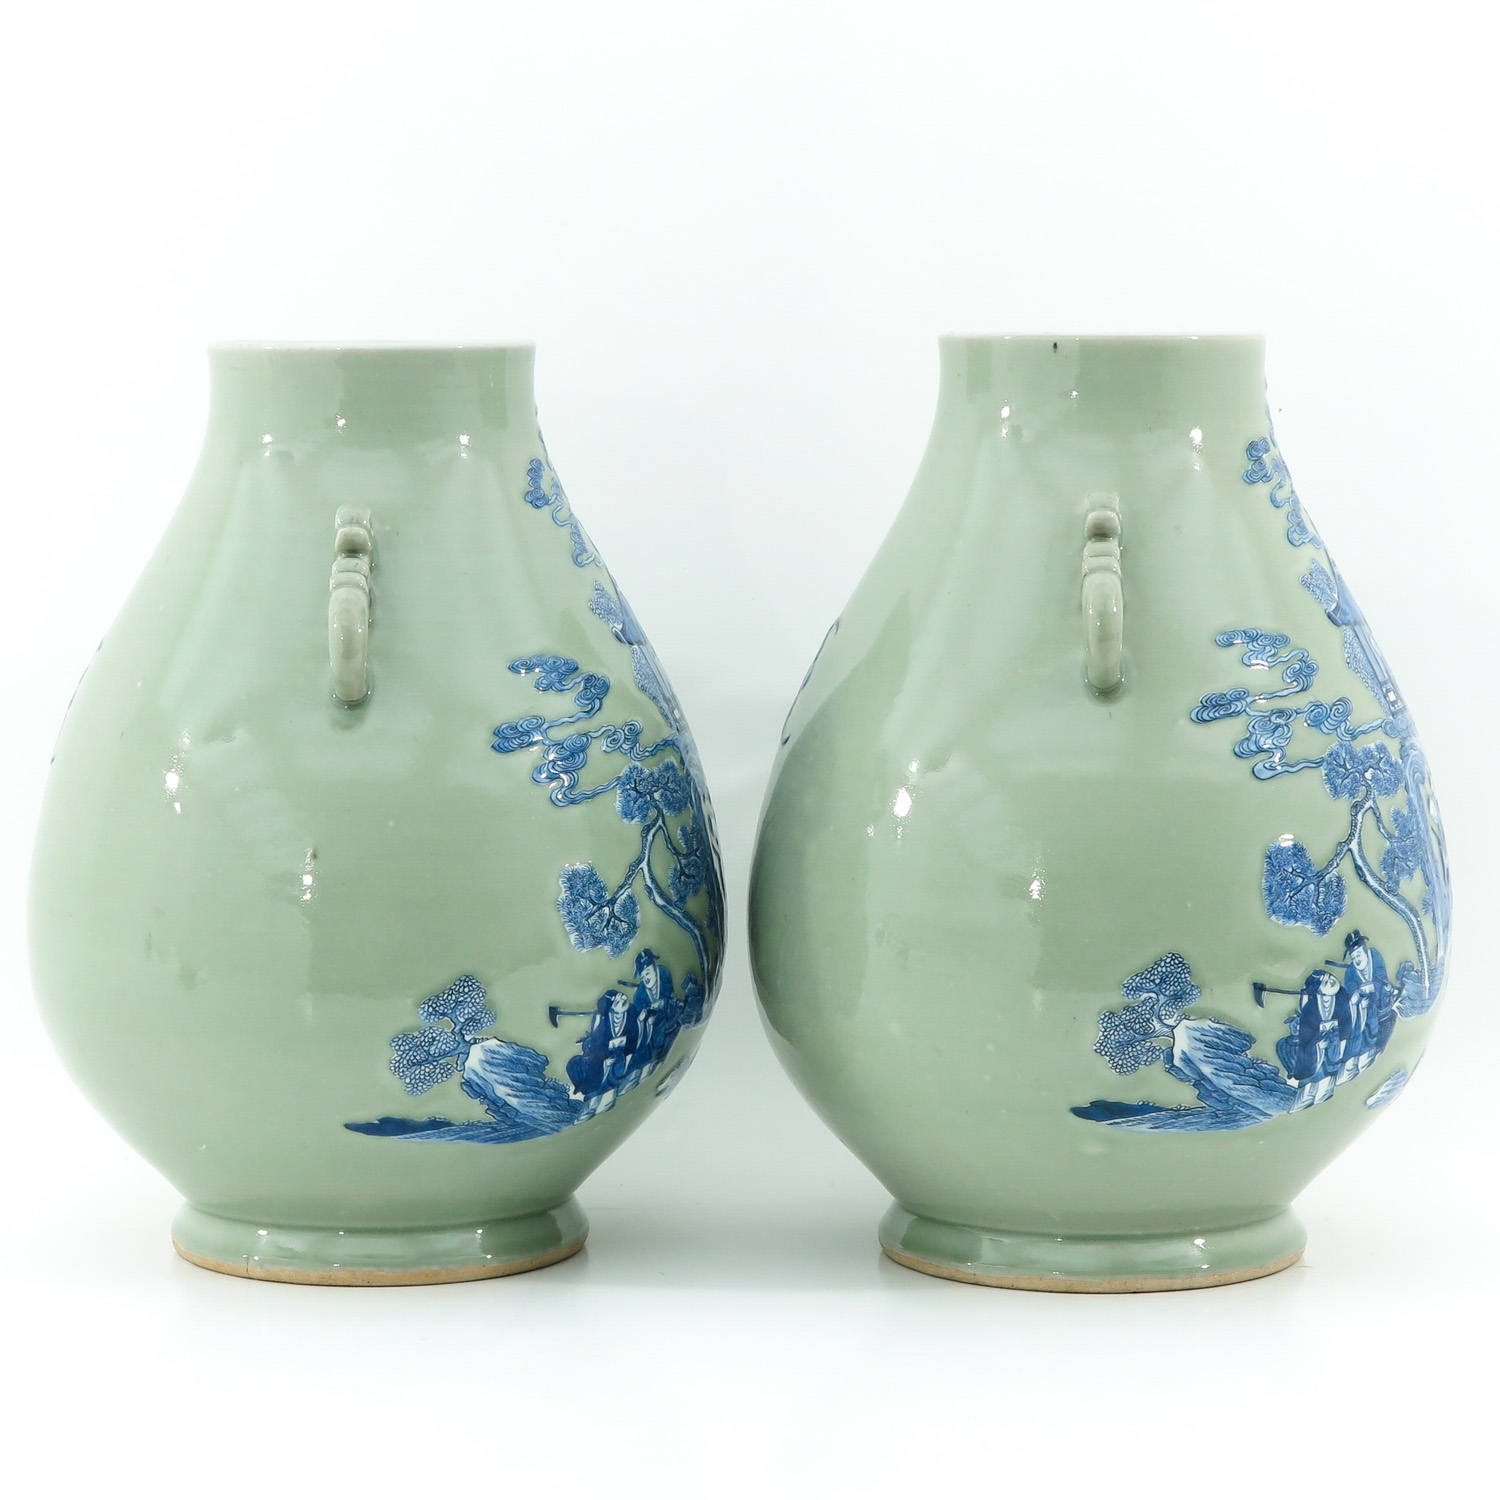 A Pair of Celadon and Blue Hu Vases - Image 4 of 10